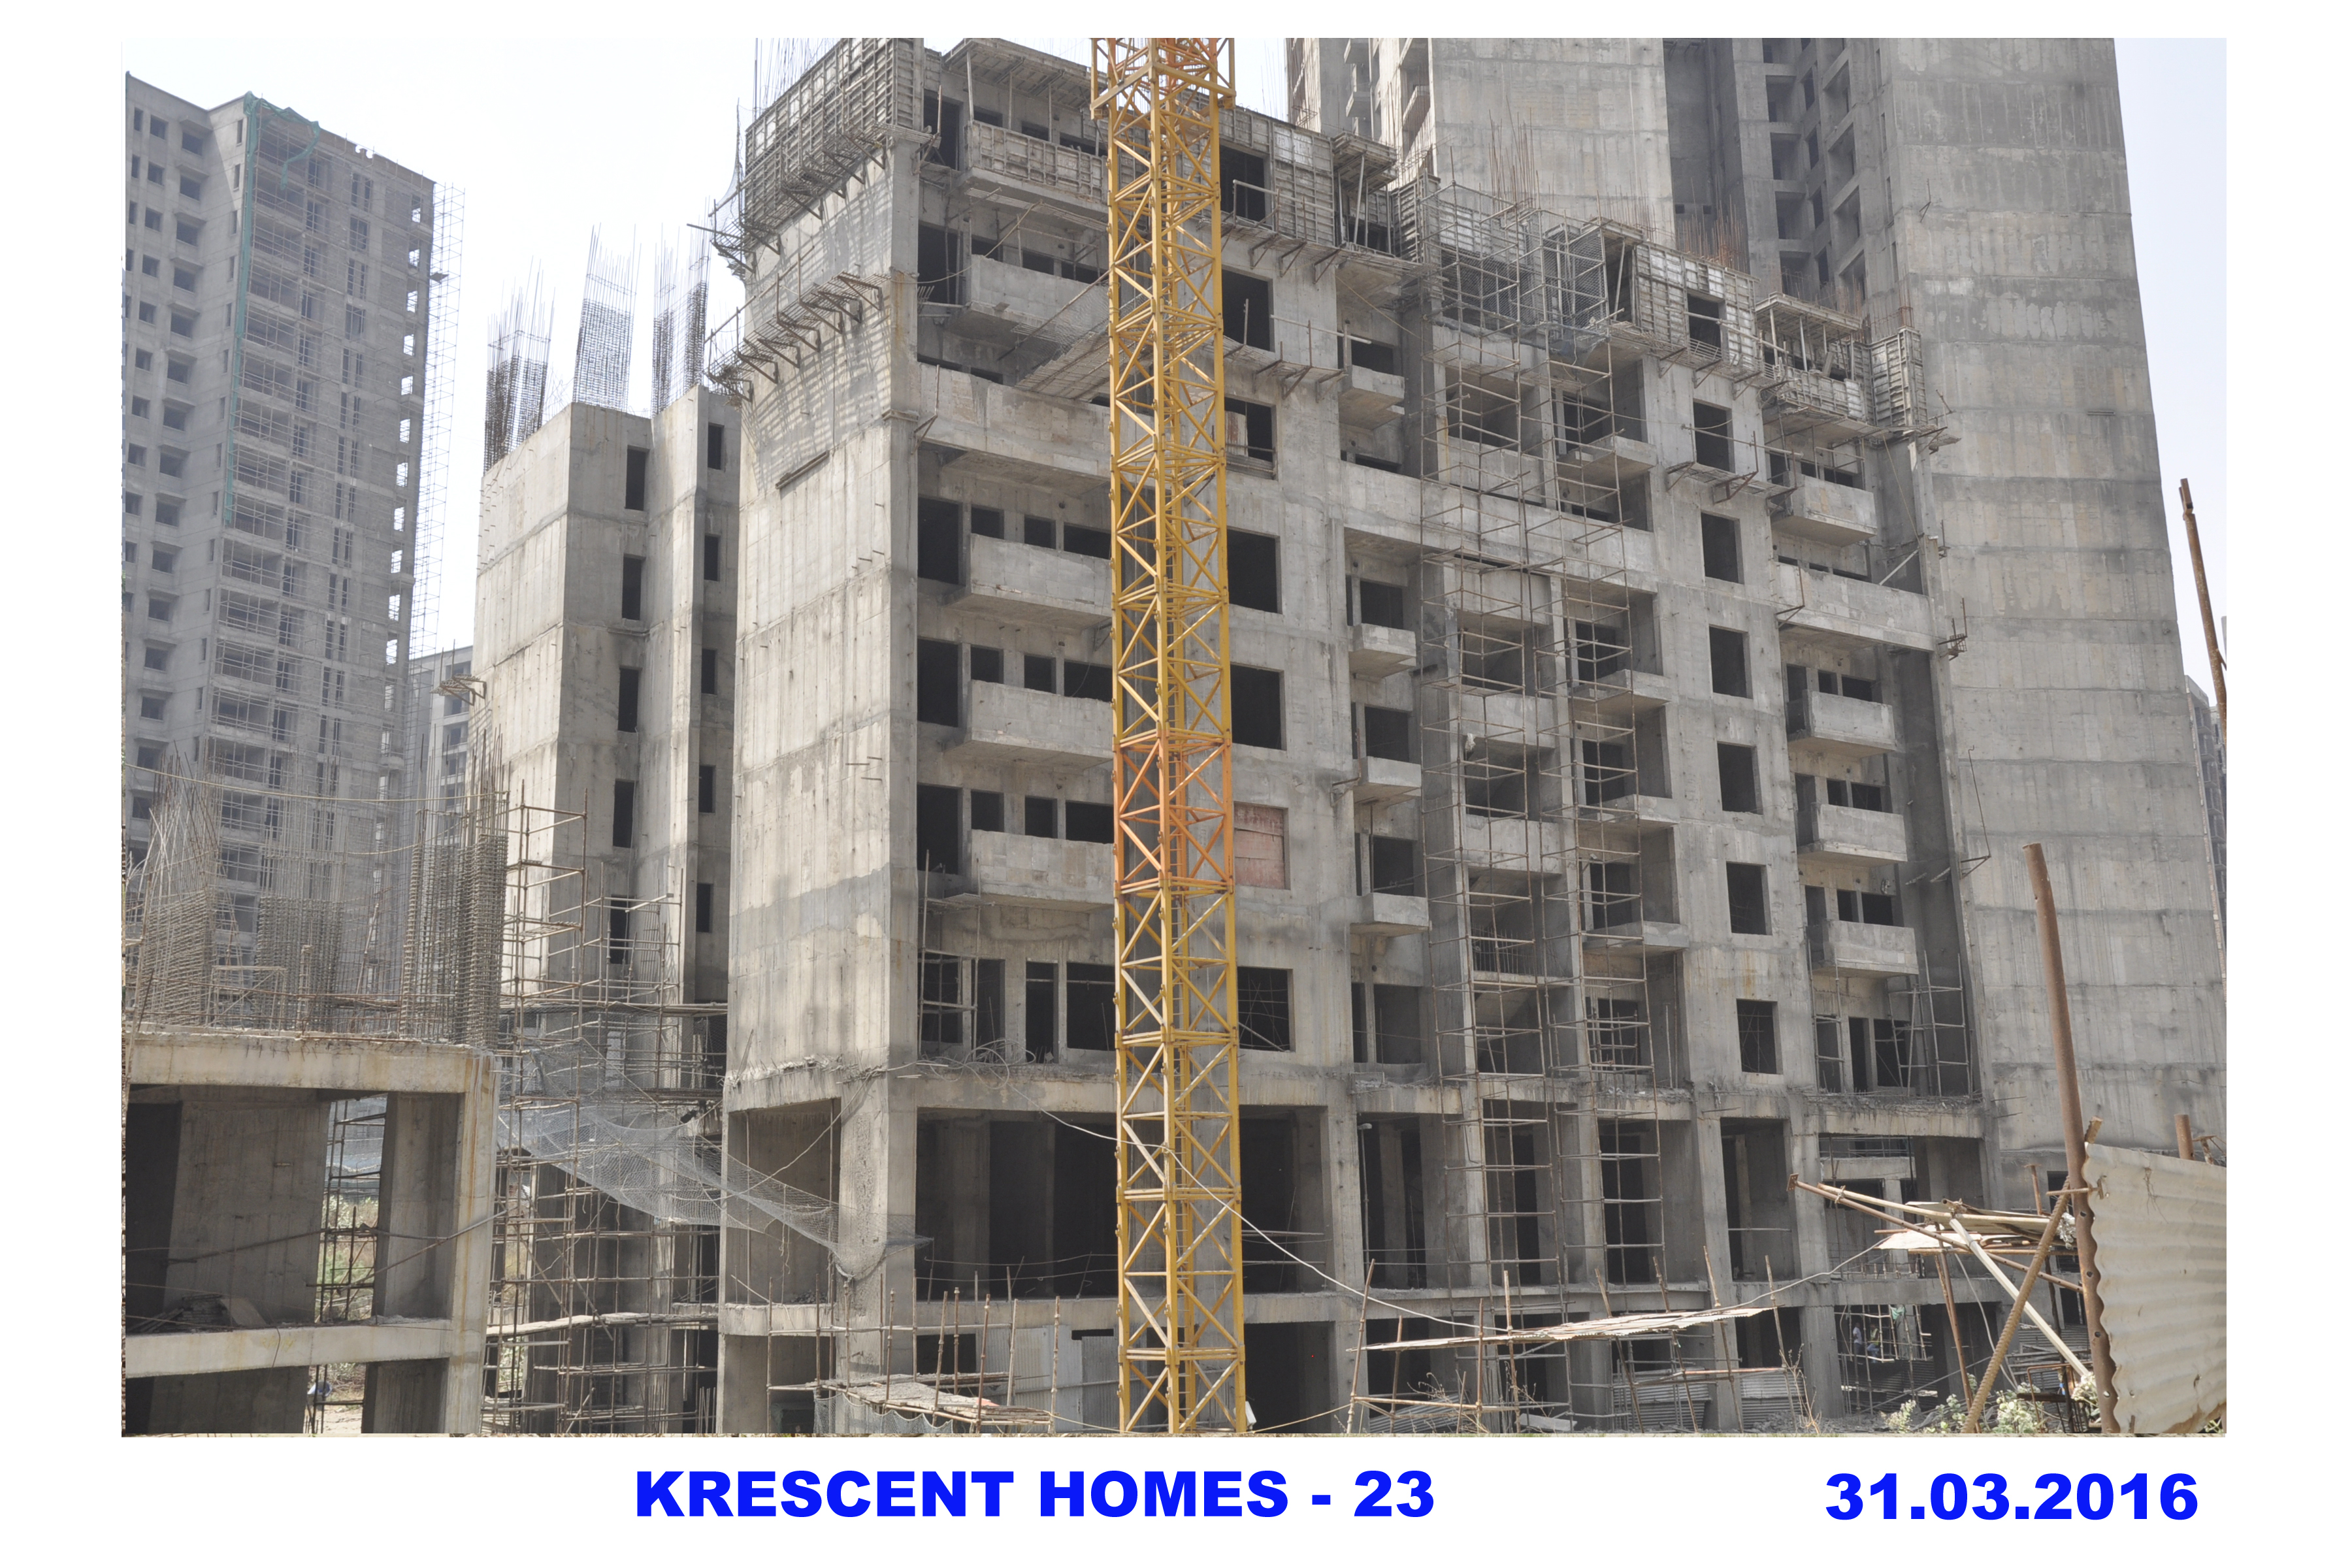 Krescent Homes Tower - 23